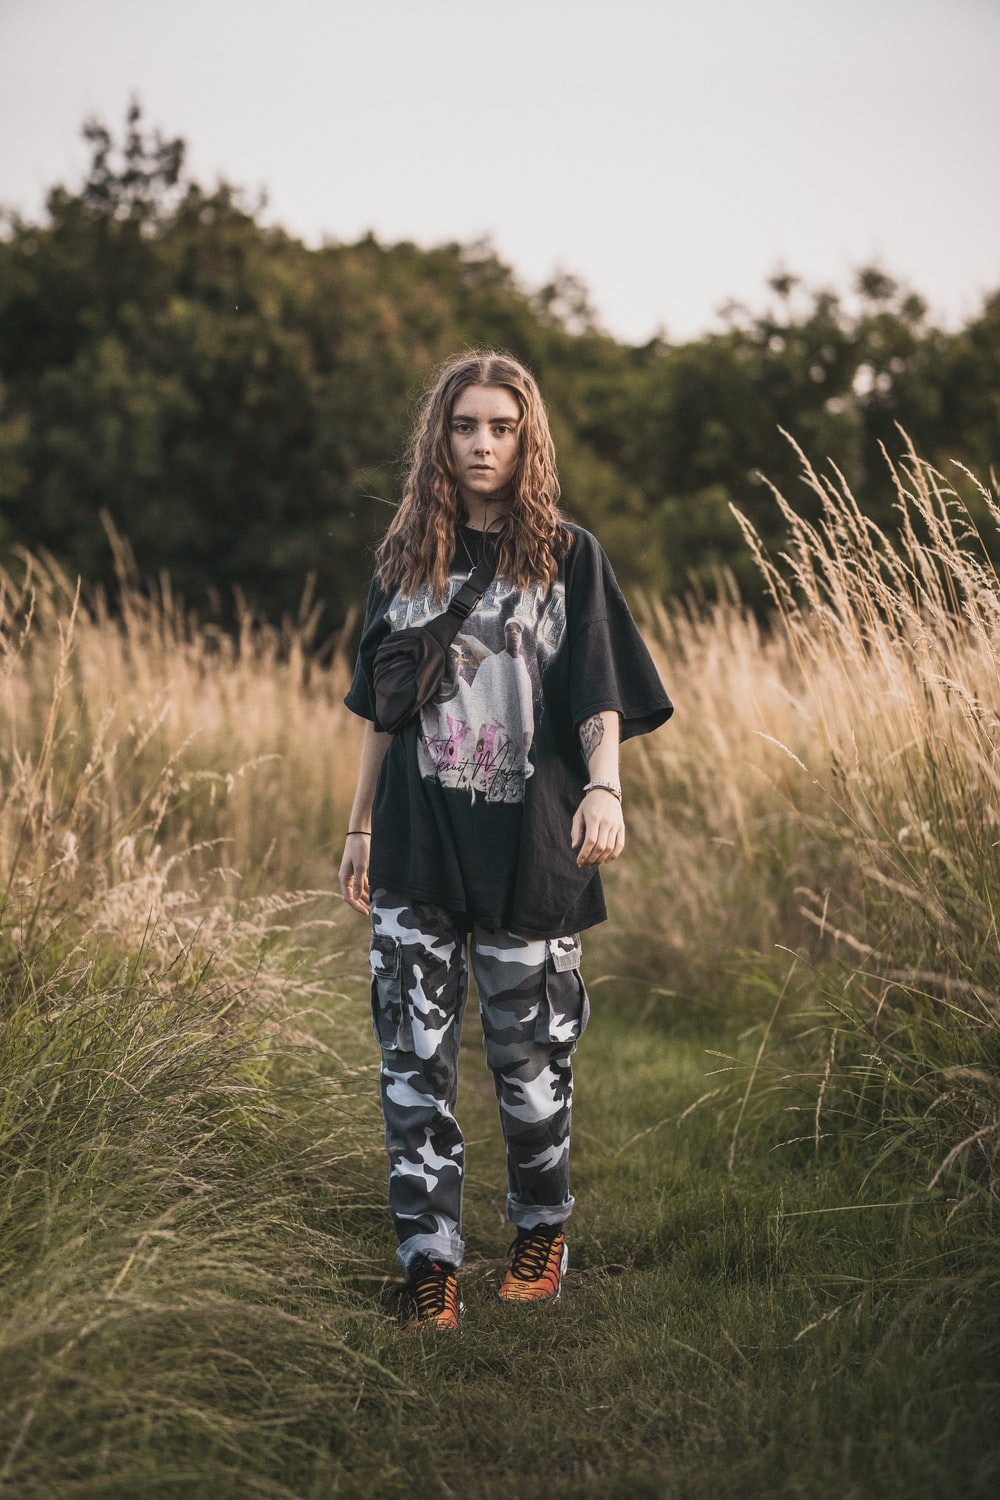 woman in black and grey t-shirt and grey camouflage pants standing in grassy trail